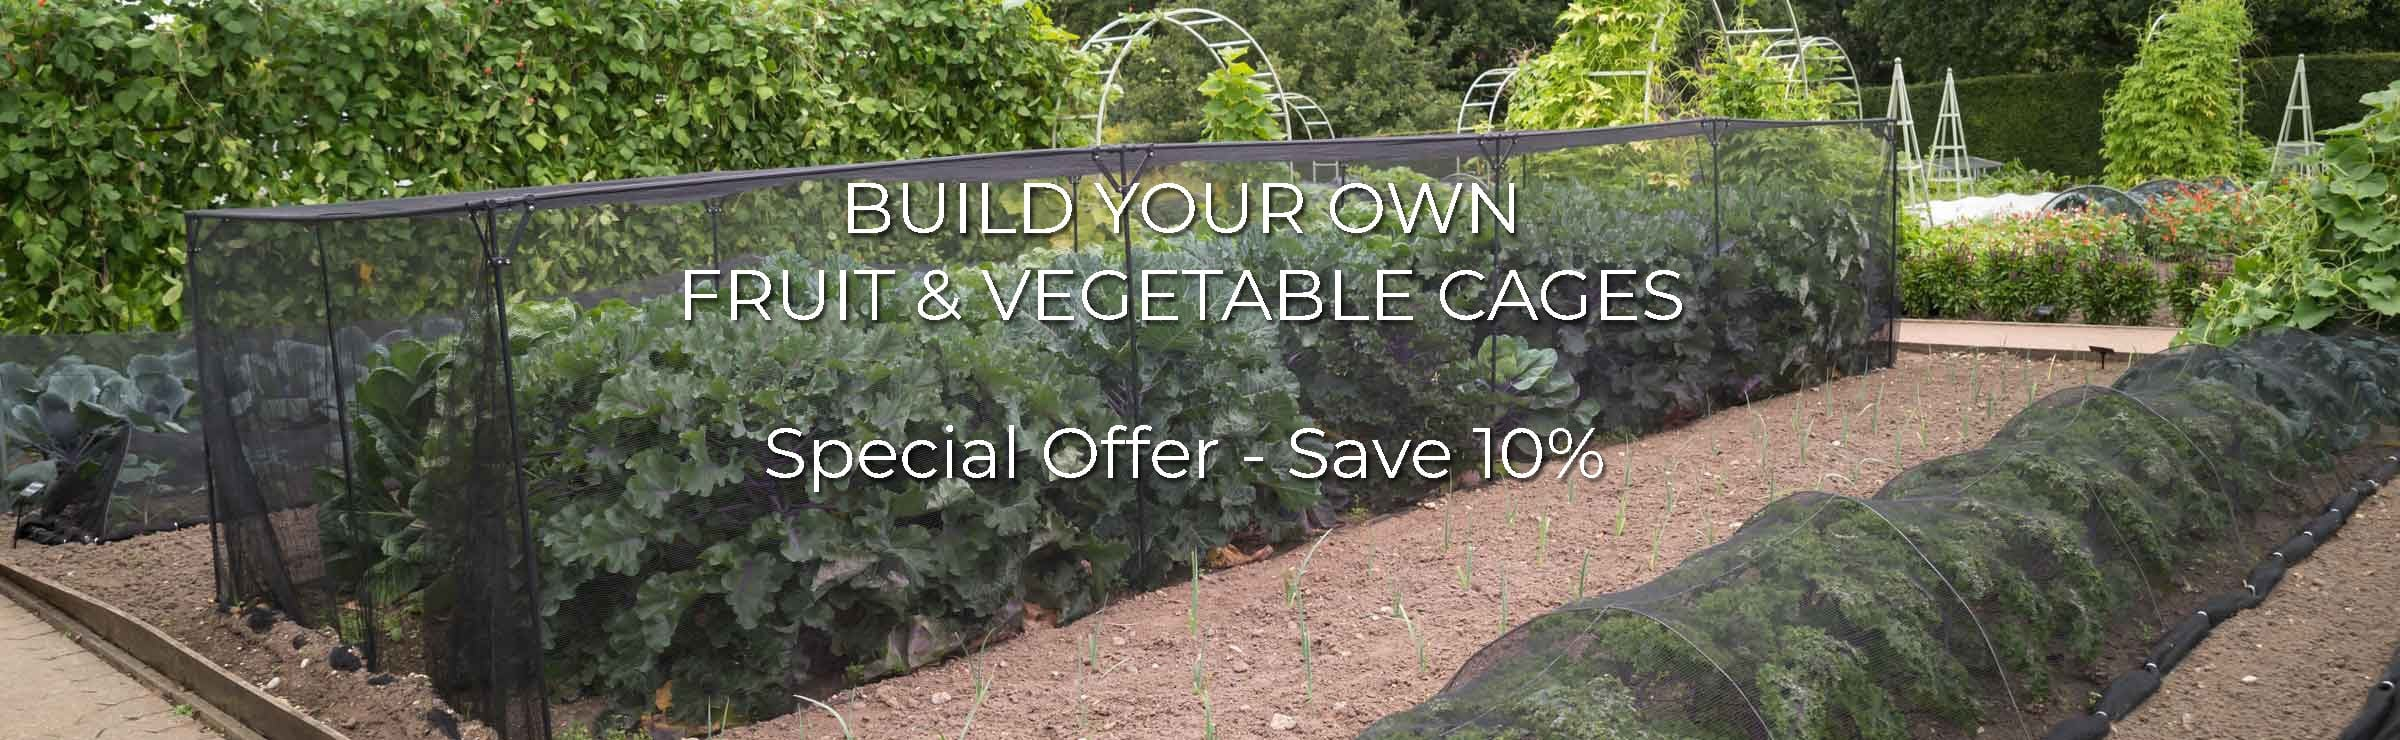 Save 10% on Build Your Own Cages